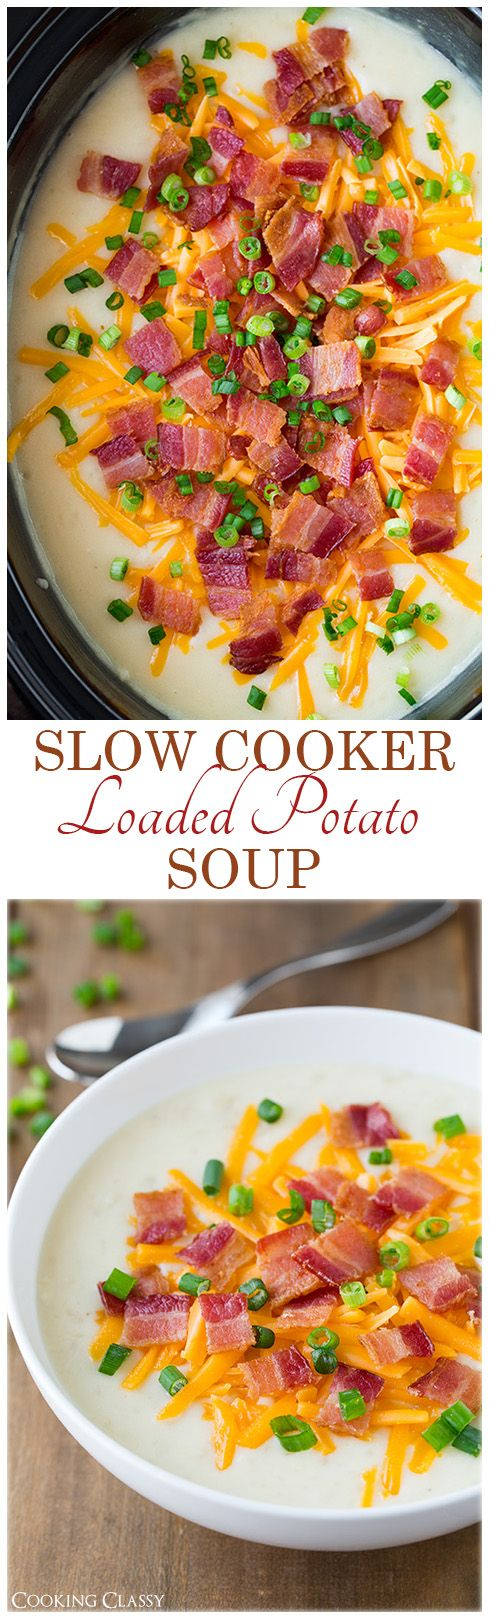 thai silver jewelry Slow Cooker Loaded Potato Soup   easy to make and tastes amazing